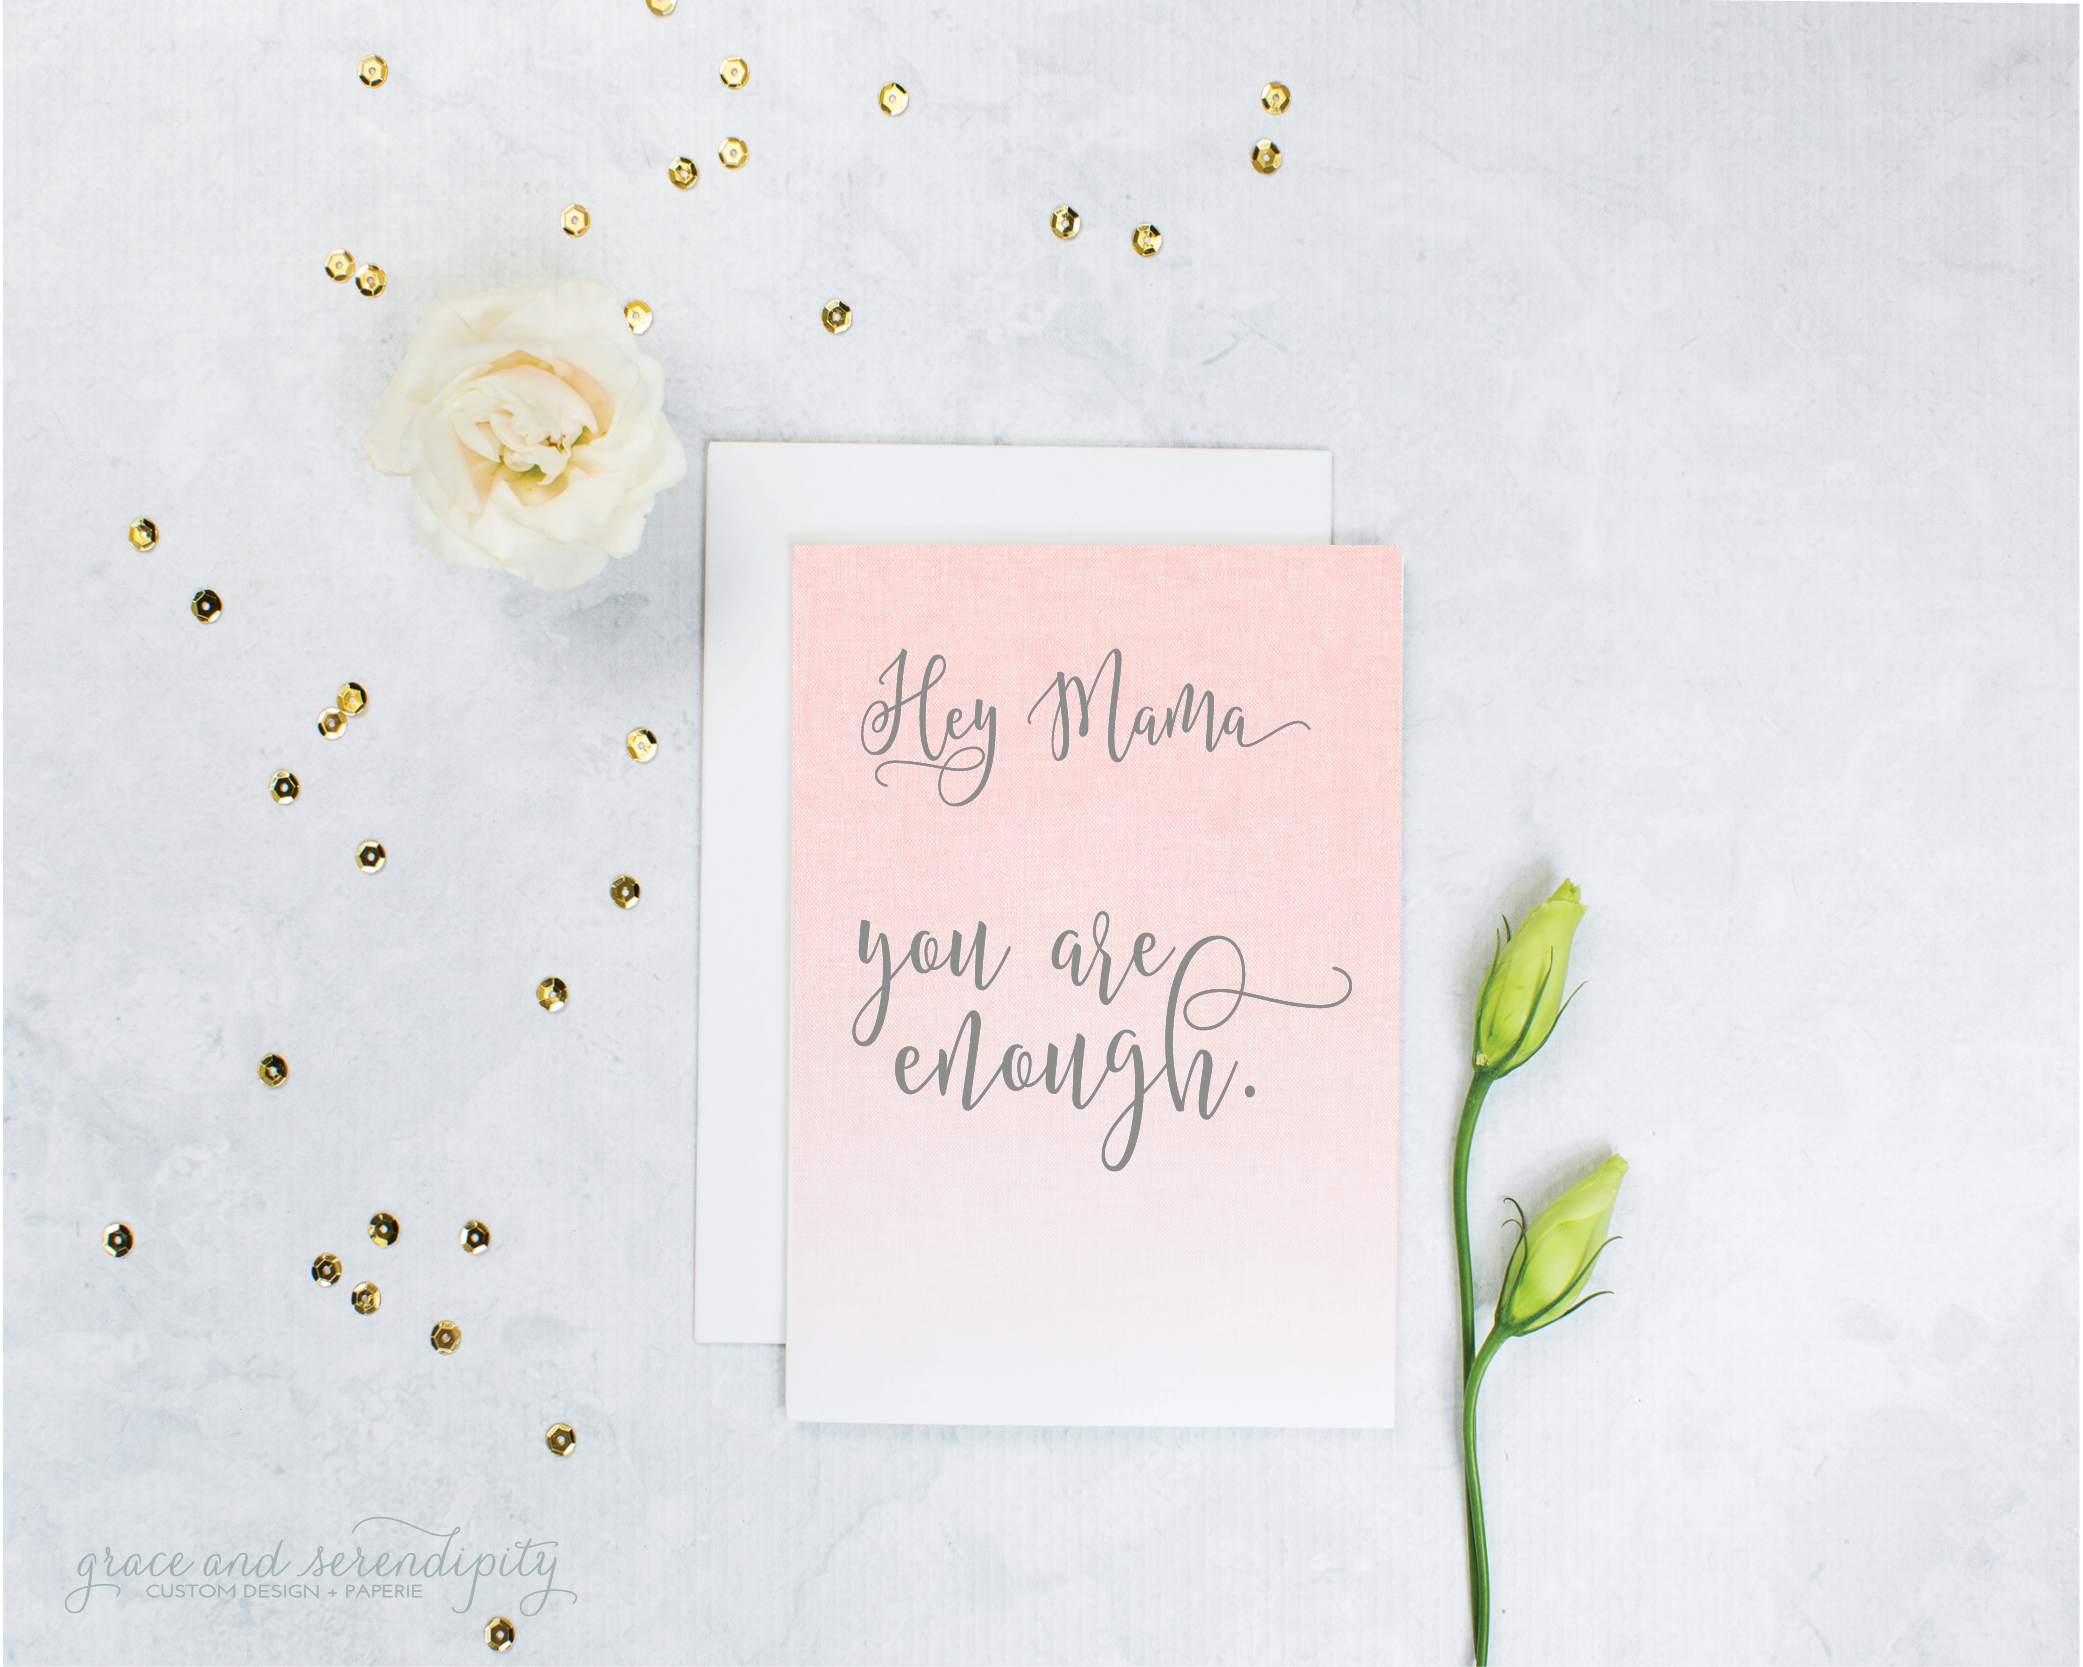 gs-2016-hey-mama-etsy-photos3.png